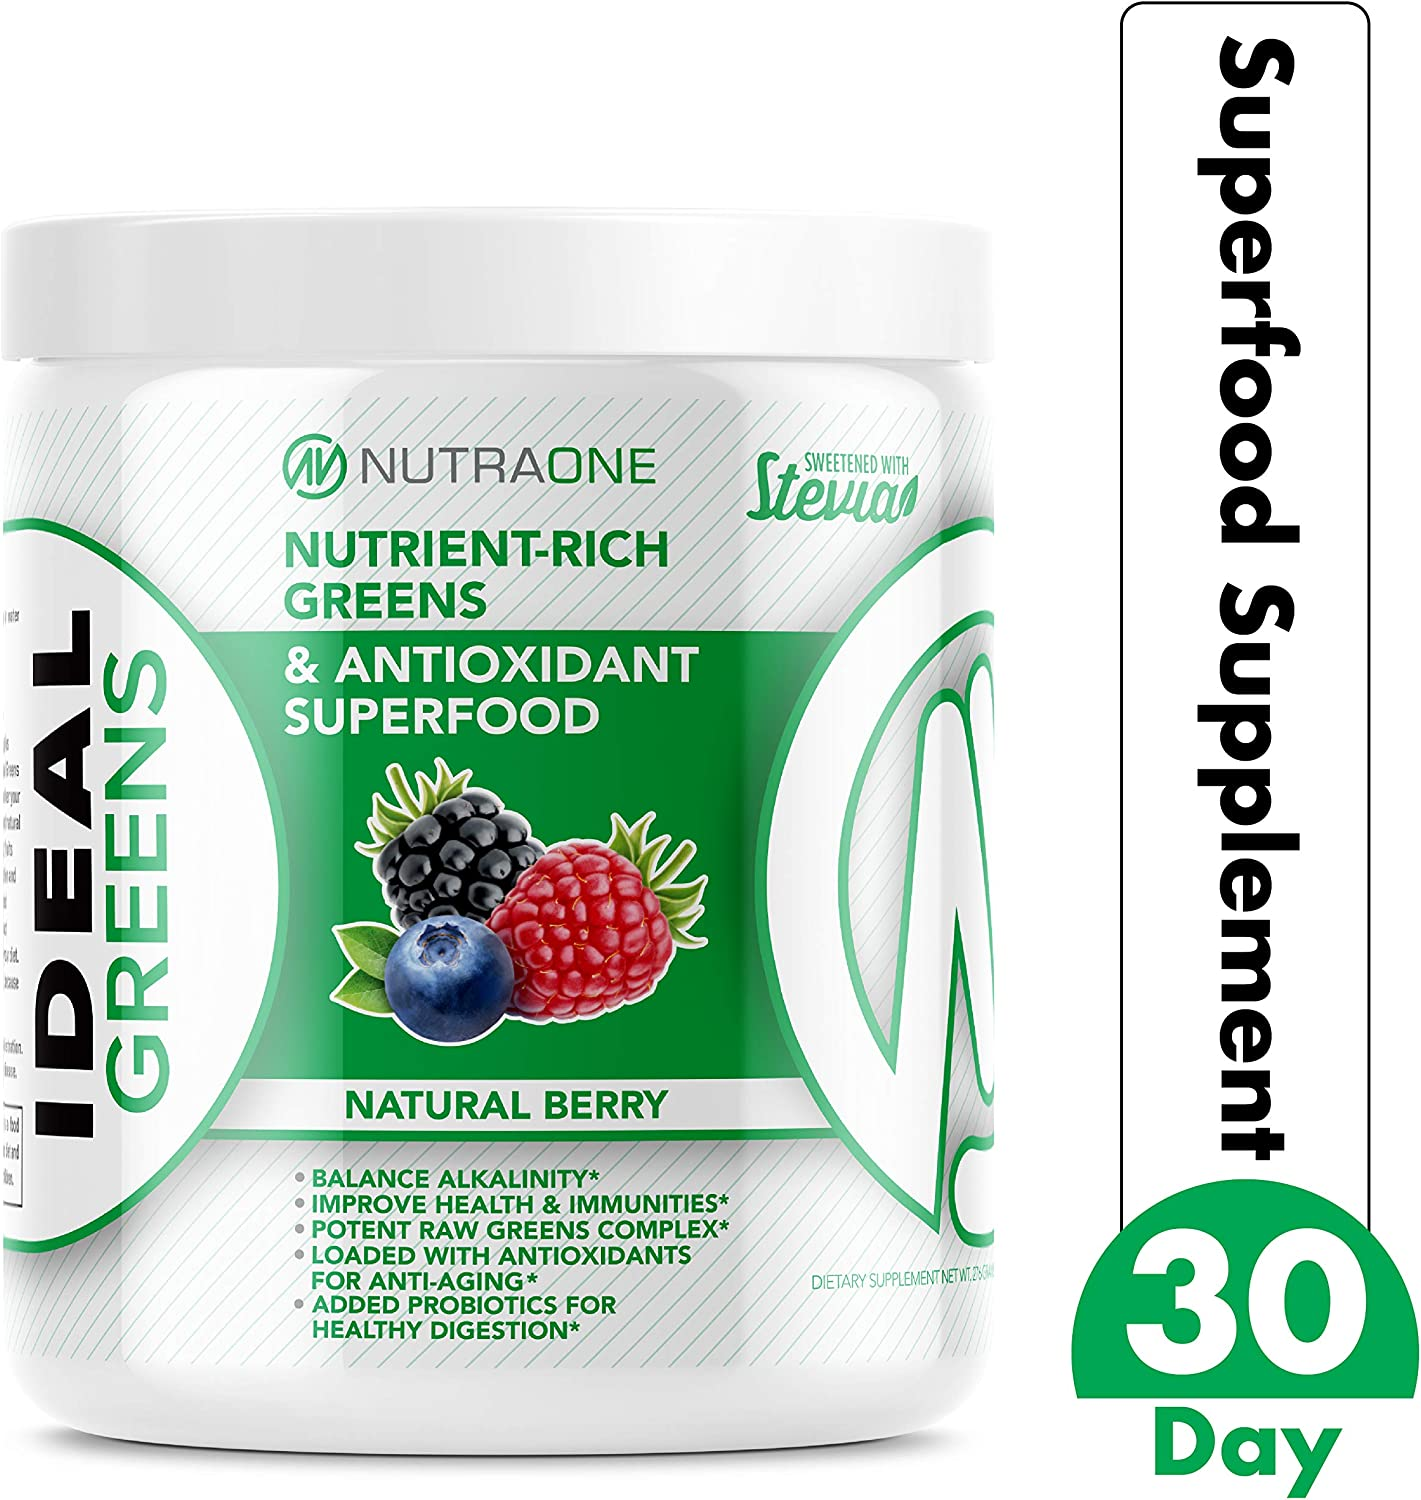 Ideal Greens Superfood Greens Powder by NutraOne Powdered Antioxidant and Nutrient-Rich Superfood Supplement Natural Berry – 30 Servings